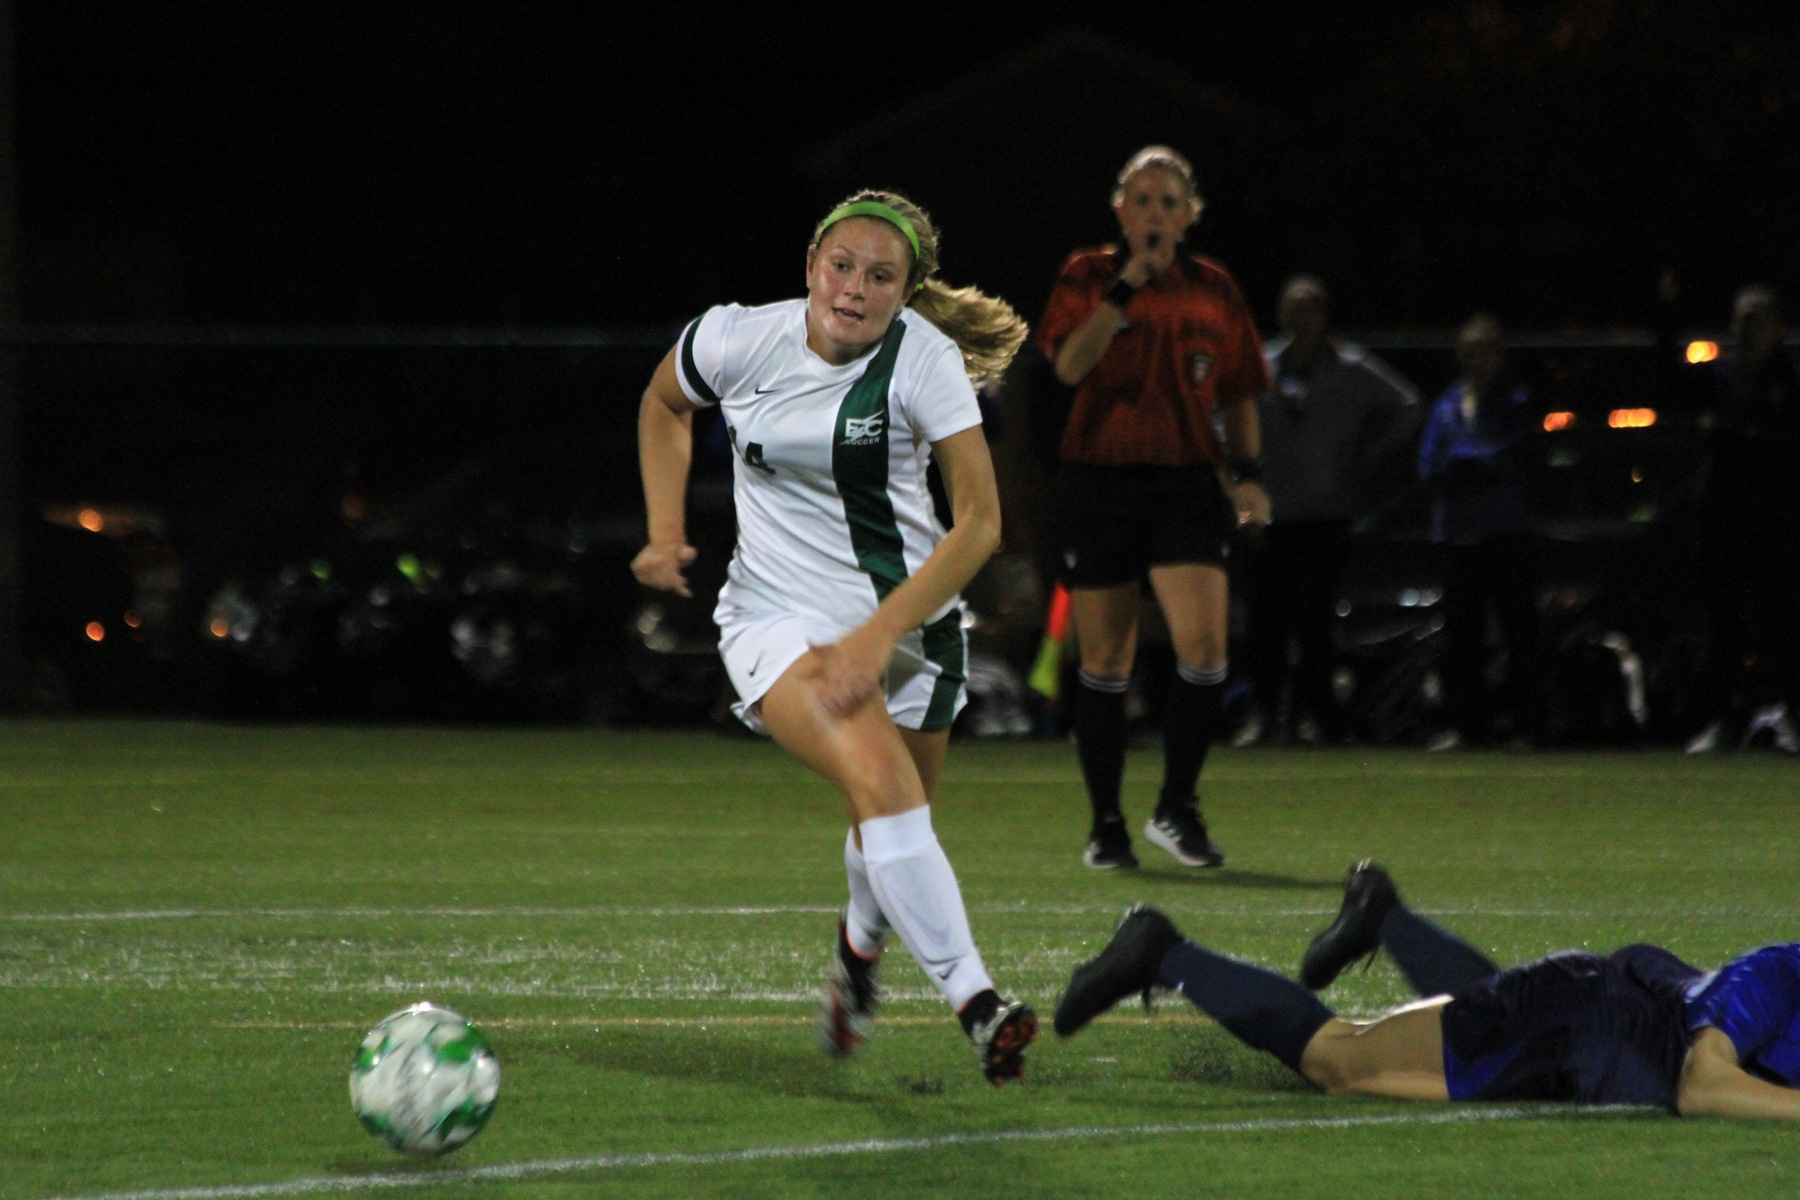 Goodwin Strikes Twice As Blazers Top Nighthawks